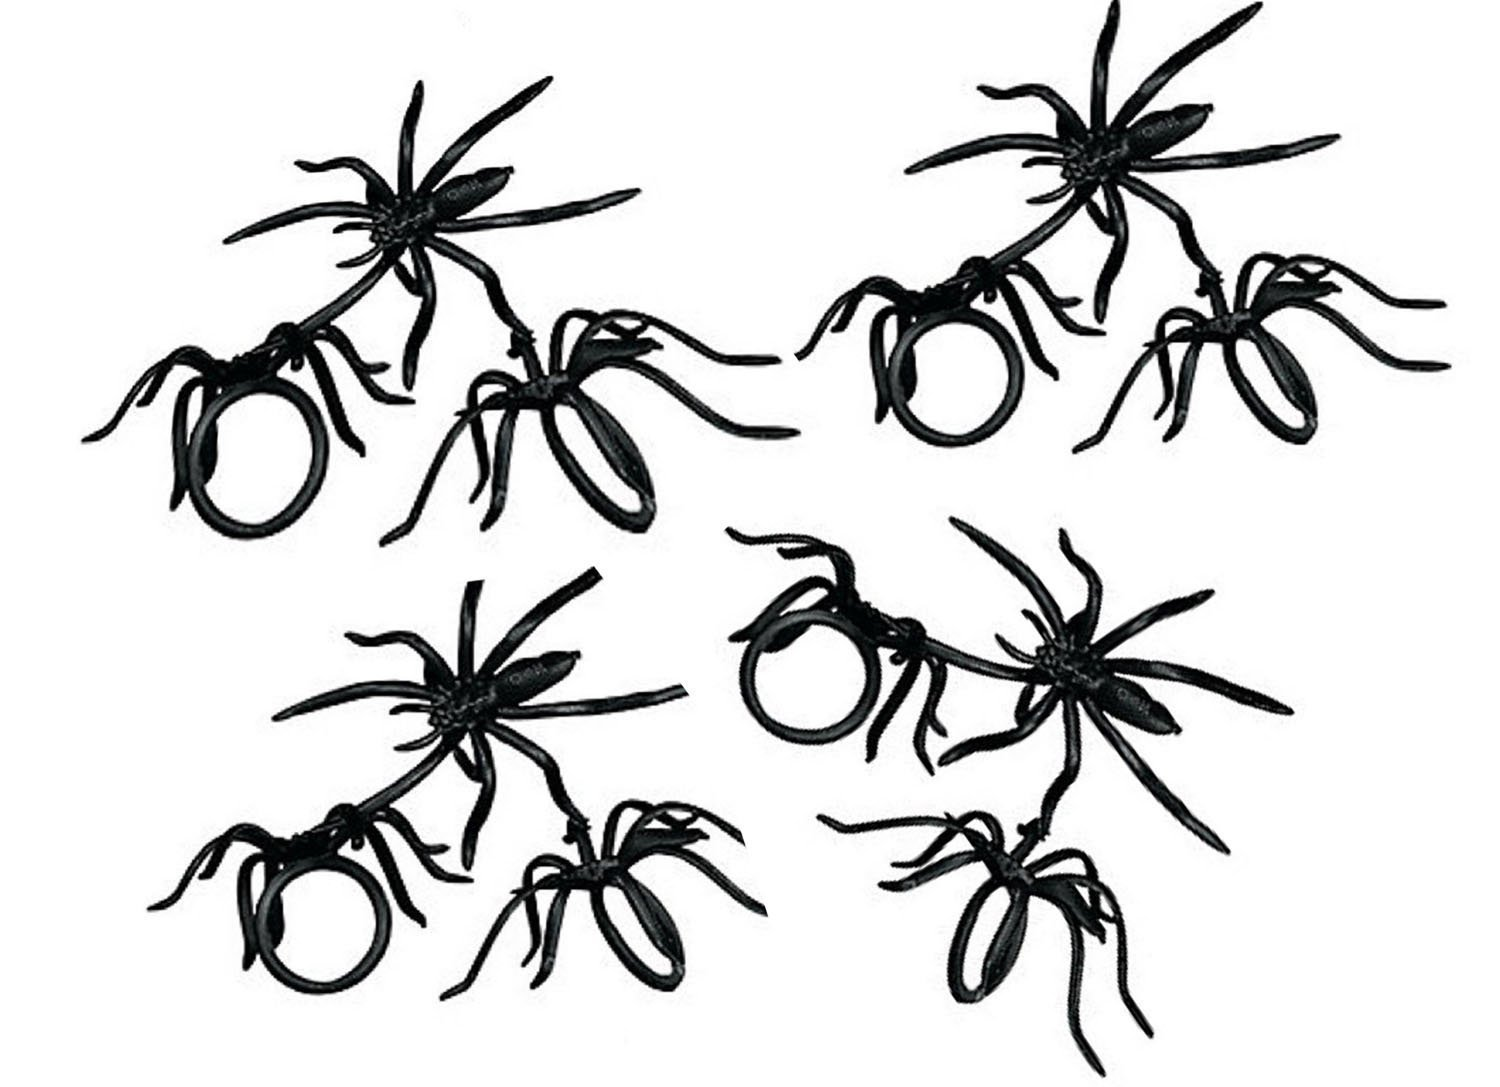 Spider Rings pack of 144